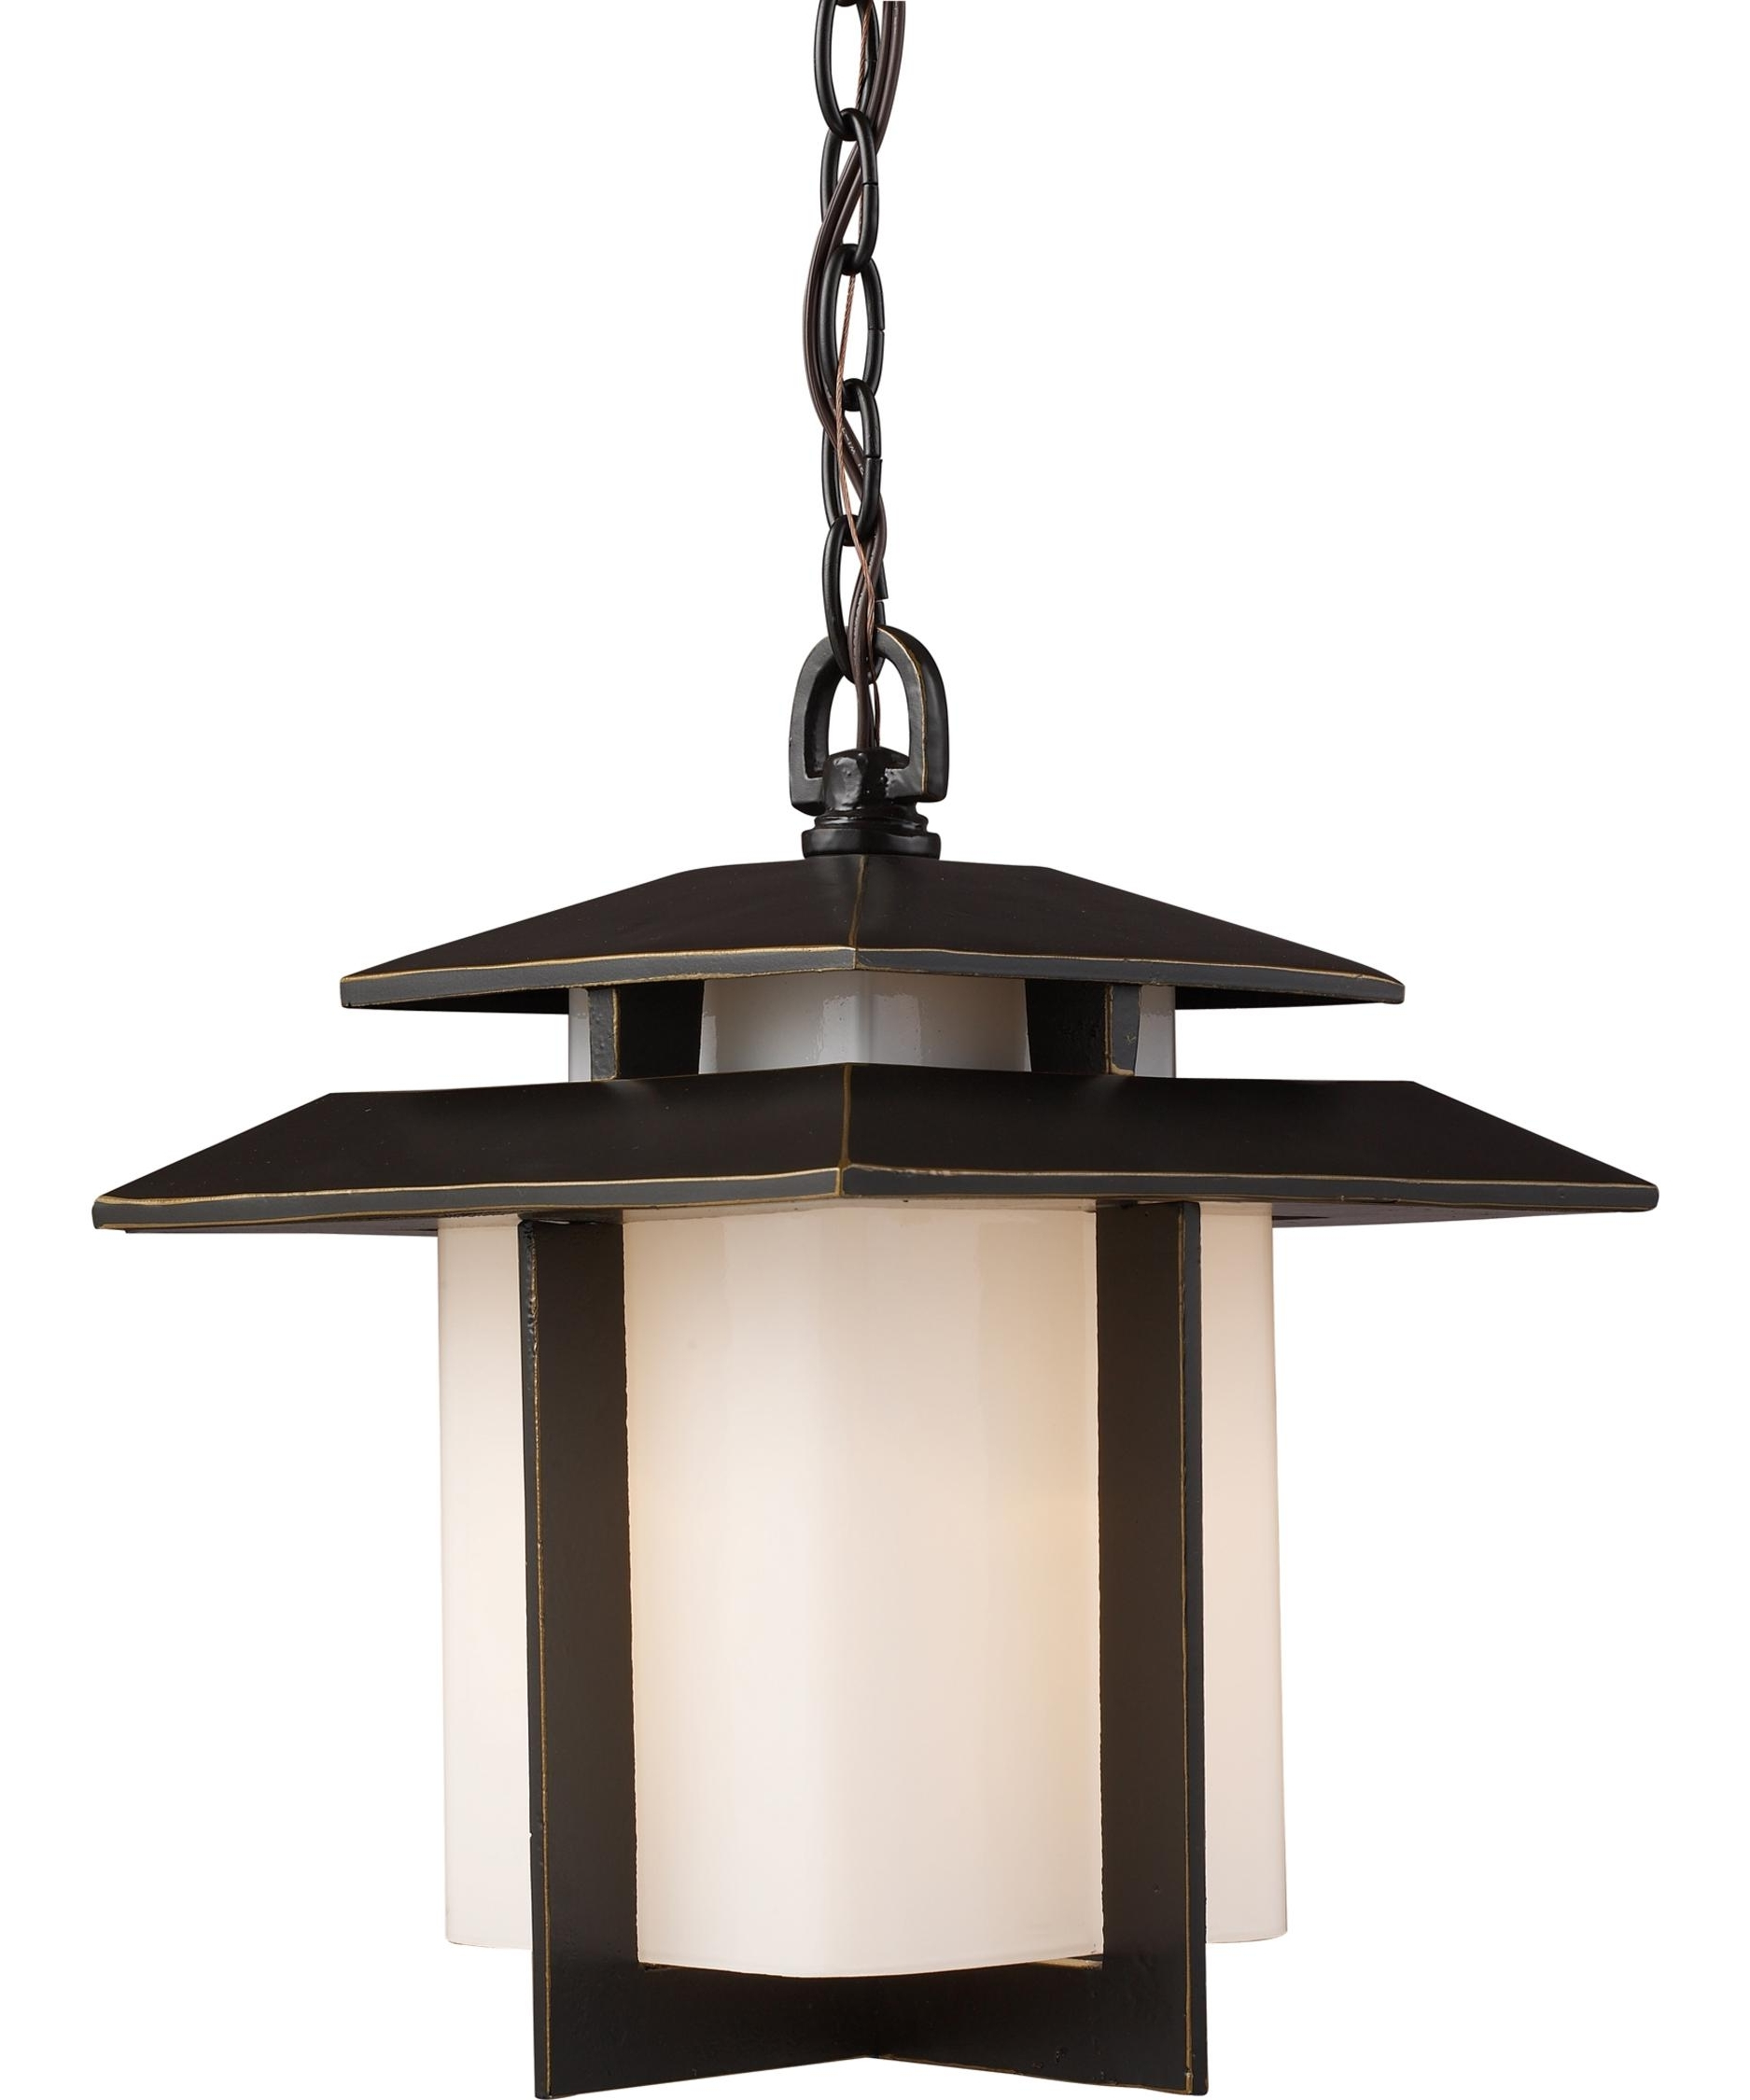 Most Recently Released Light : Outdoor Lighting Ideas Without Electricity Exterior Fixtures Inside Outdoor Lighting Pendant Fixtures (View 6 of 20)